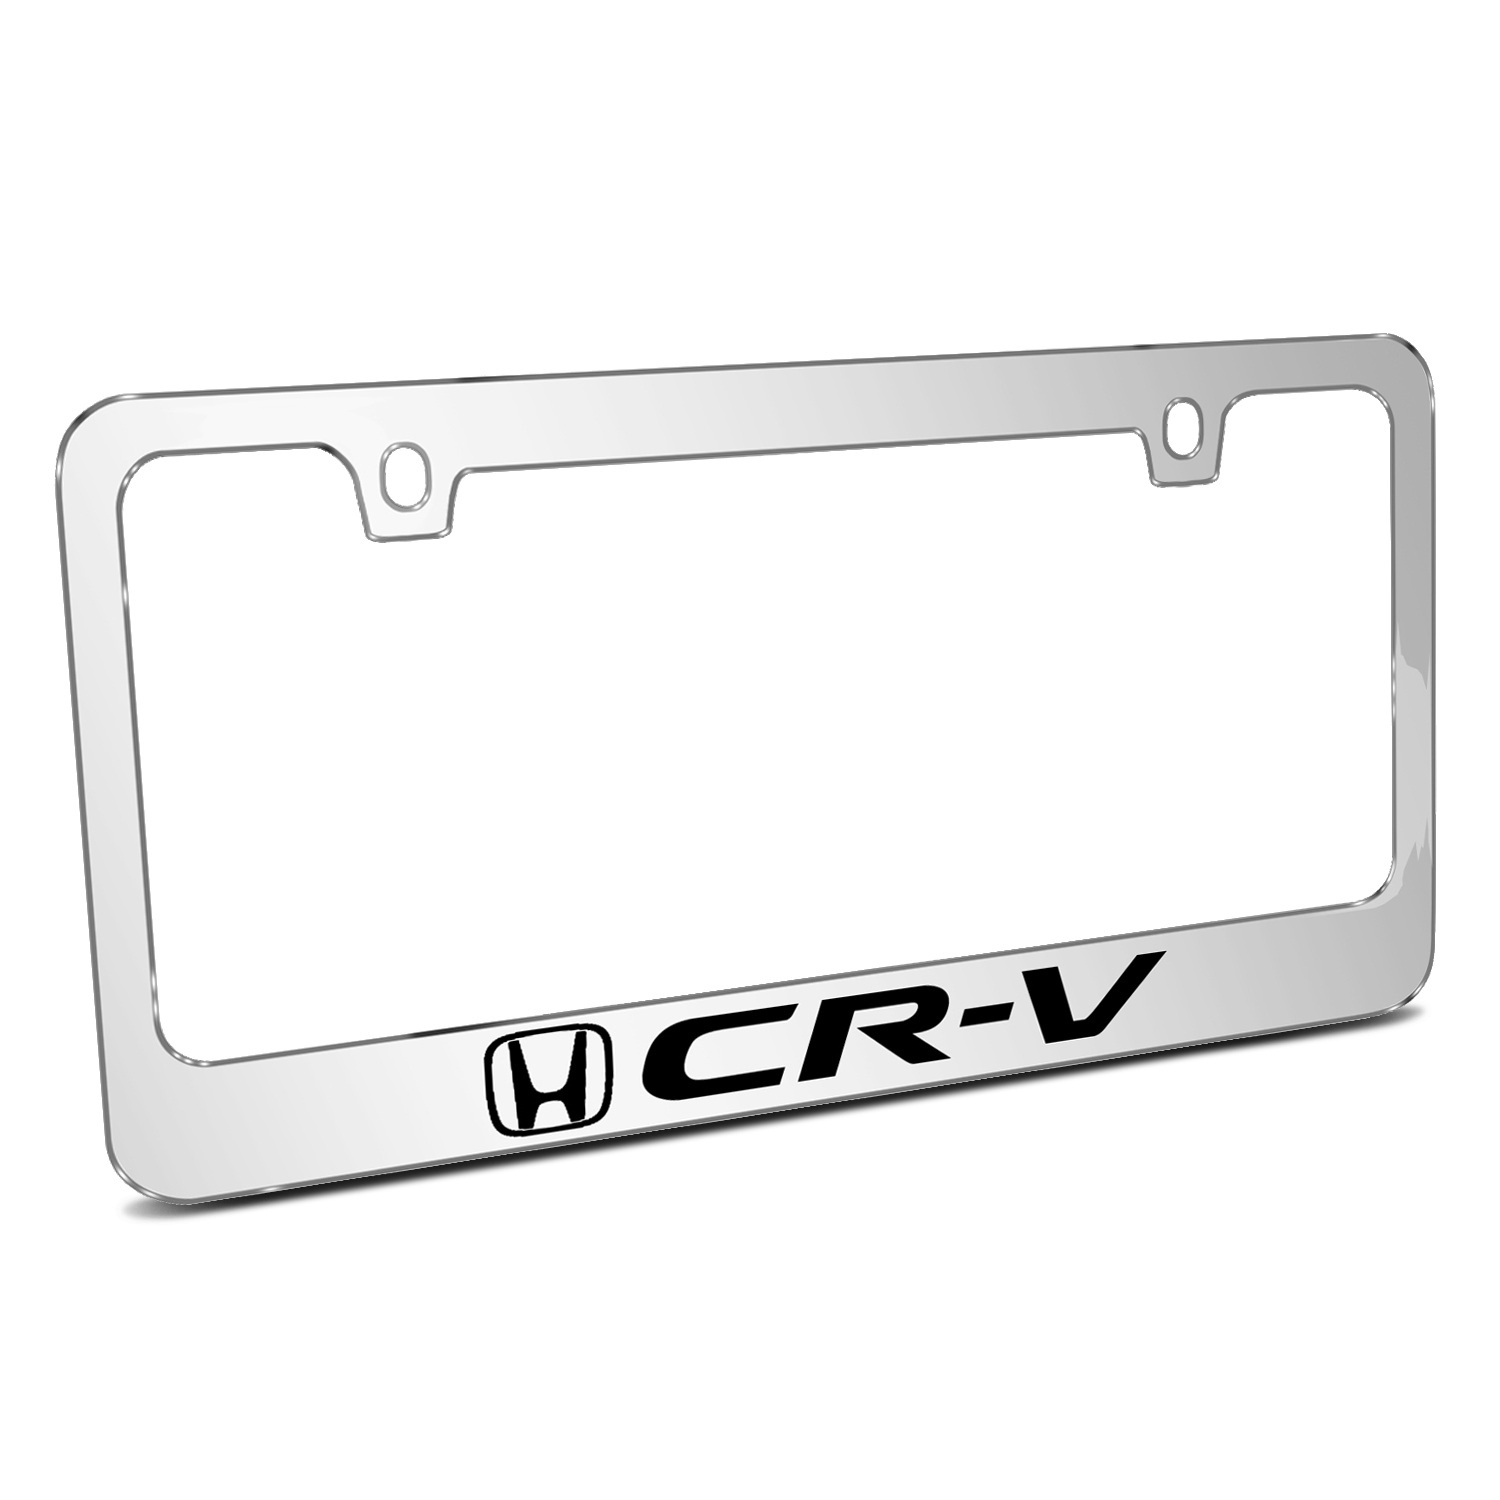 Honda CR-V Mirror Chrome Metal License Plate Frame